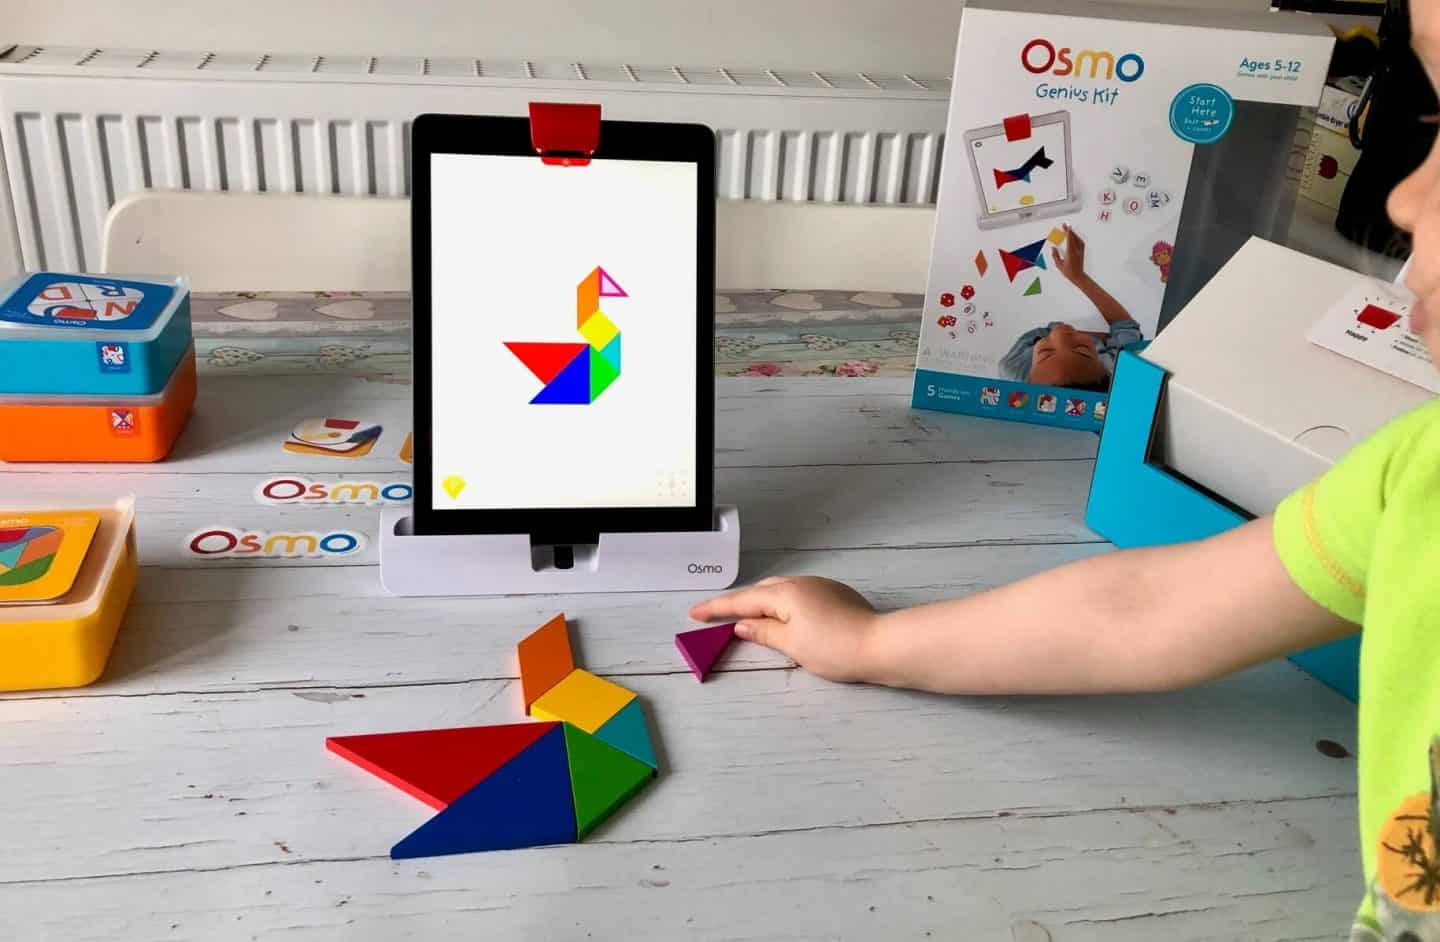 Osmo Tangram game